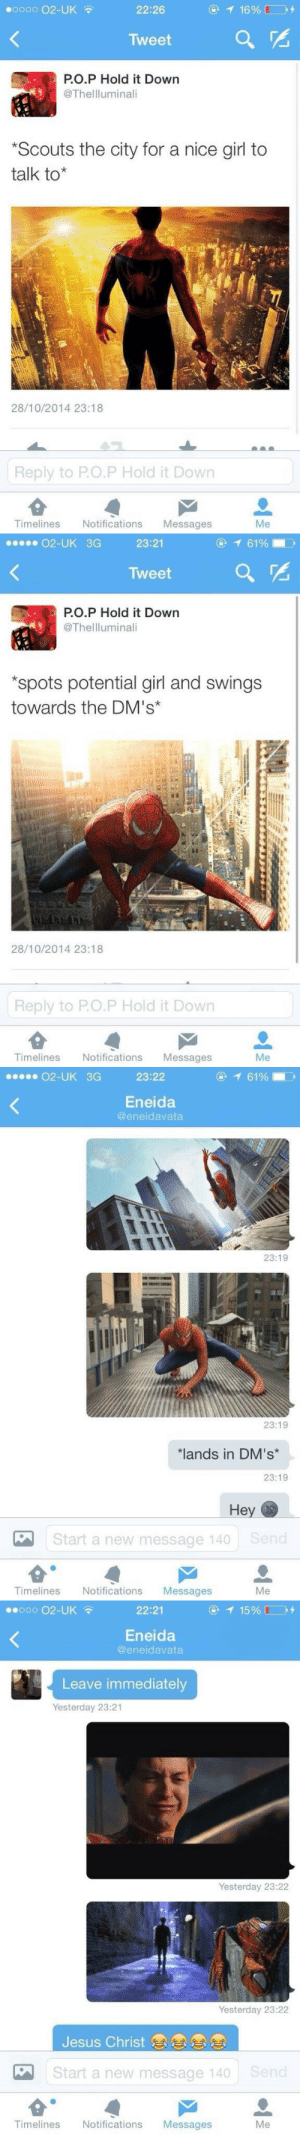 Jesus, Tumblr, and Blog: 00000 02-UK  22:26  Tweet  PO.P Hold it Down  @Thellluminali  Scouts the city for a nice girl to  talk to*  28/10/2014 23:18  Reply to P.O.P Hold it Down  Timelines Notifications Messages  Me   02-UK 3G  23:21  @ 61%. ,  Tweet  PO.P Hold it Down  @Thellluminali  spots potential girl and swings  towards the DM's  28/10/2014 23:18  Reply to P.O.P Hold it Down  Timelines NotificationsMessages  Me   02-UK  3G  23:22  ④  61%!  Eneida  @eneidavata  23:19  23:19  ands in DM's*  23:19  Start a new message 140 Send  Timelines NotificationsMessages  Me   0oo O2-UK  22:21  Eneida  @eneidavata  Leave immediately  Yesterday 23:21  Yesterday 23:22  Yesterday 23:22  Jesus Christ  Start a new message 140 Send  Timelines Notifications Messages  Me wingbeifong:I hate this